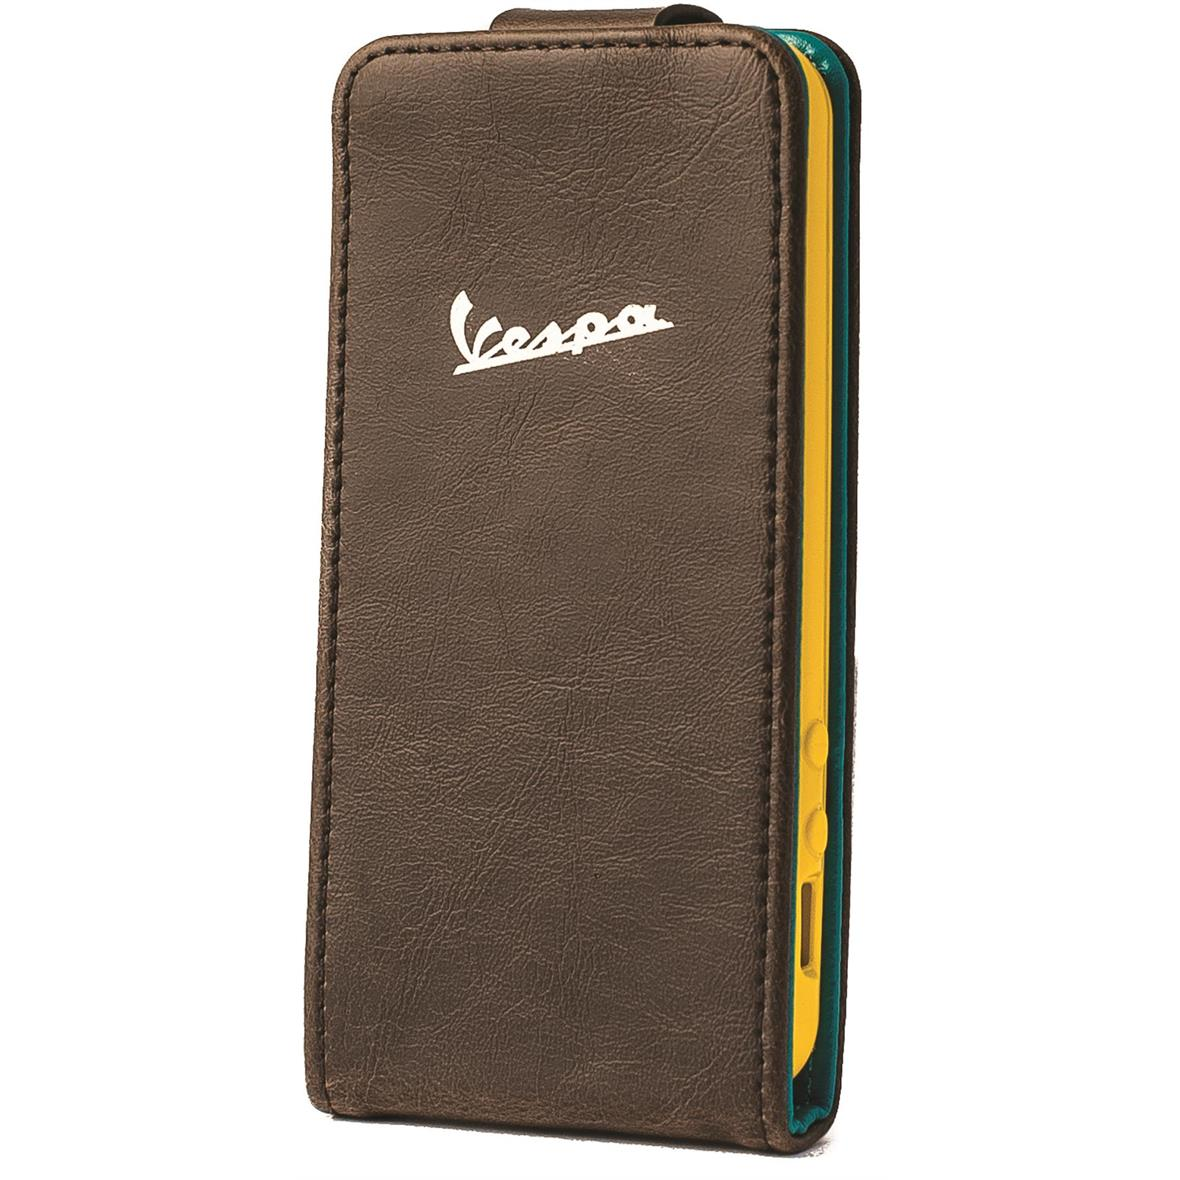 """Product Image for 'Cover FORME iPhone 5 """"Vespa - find your way""""Title'"""